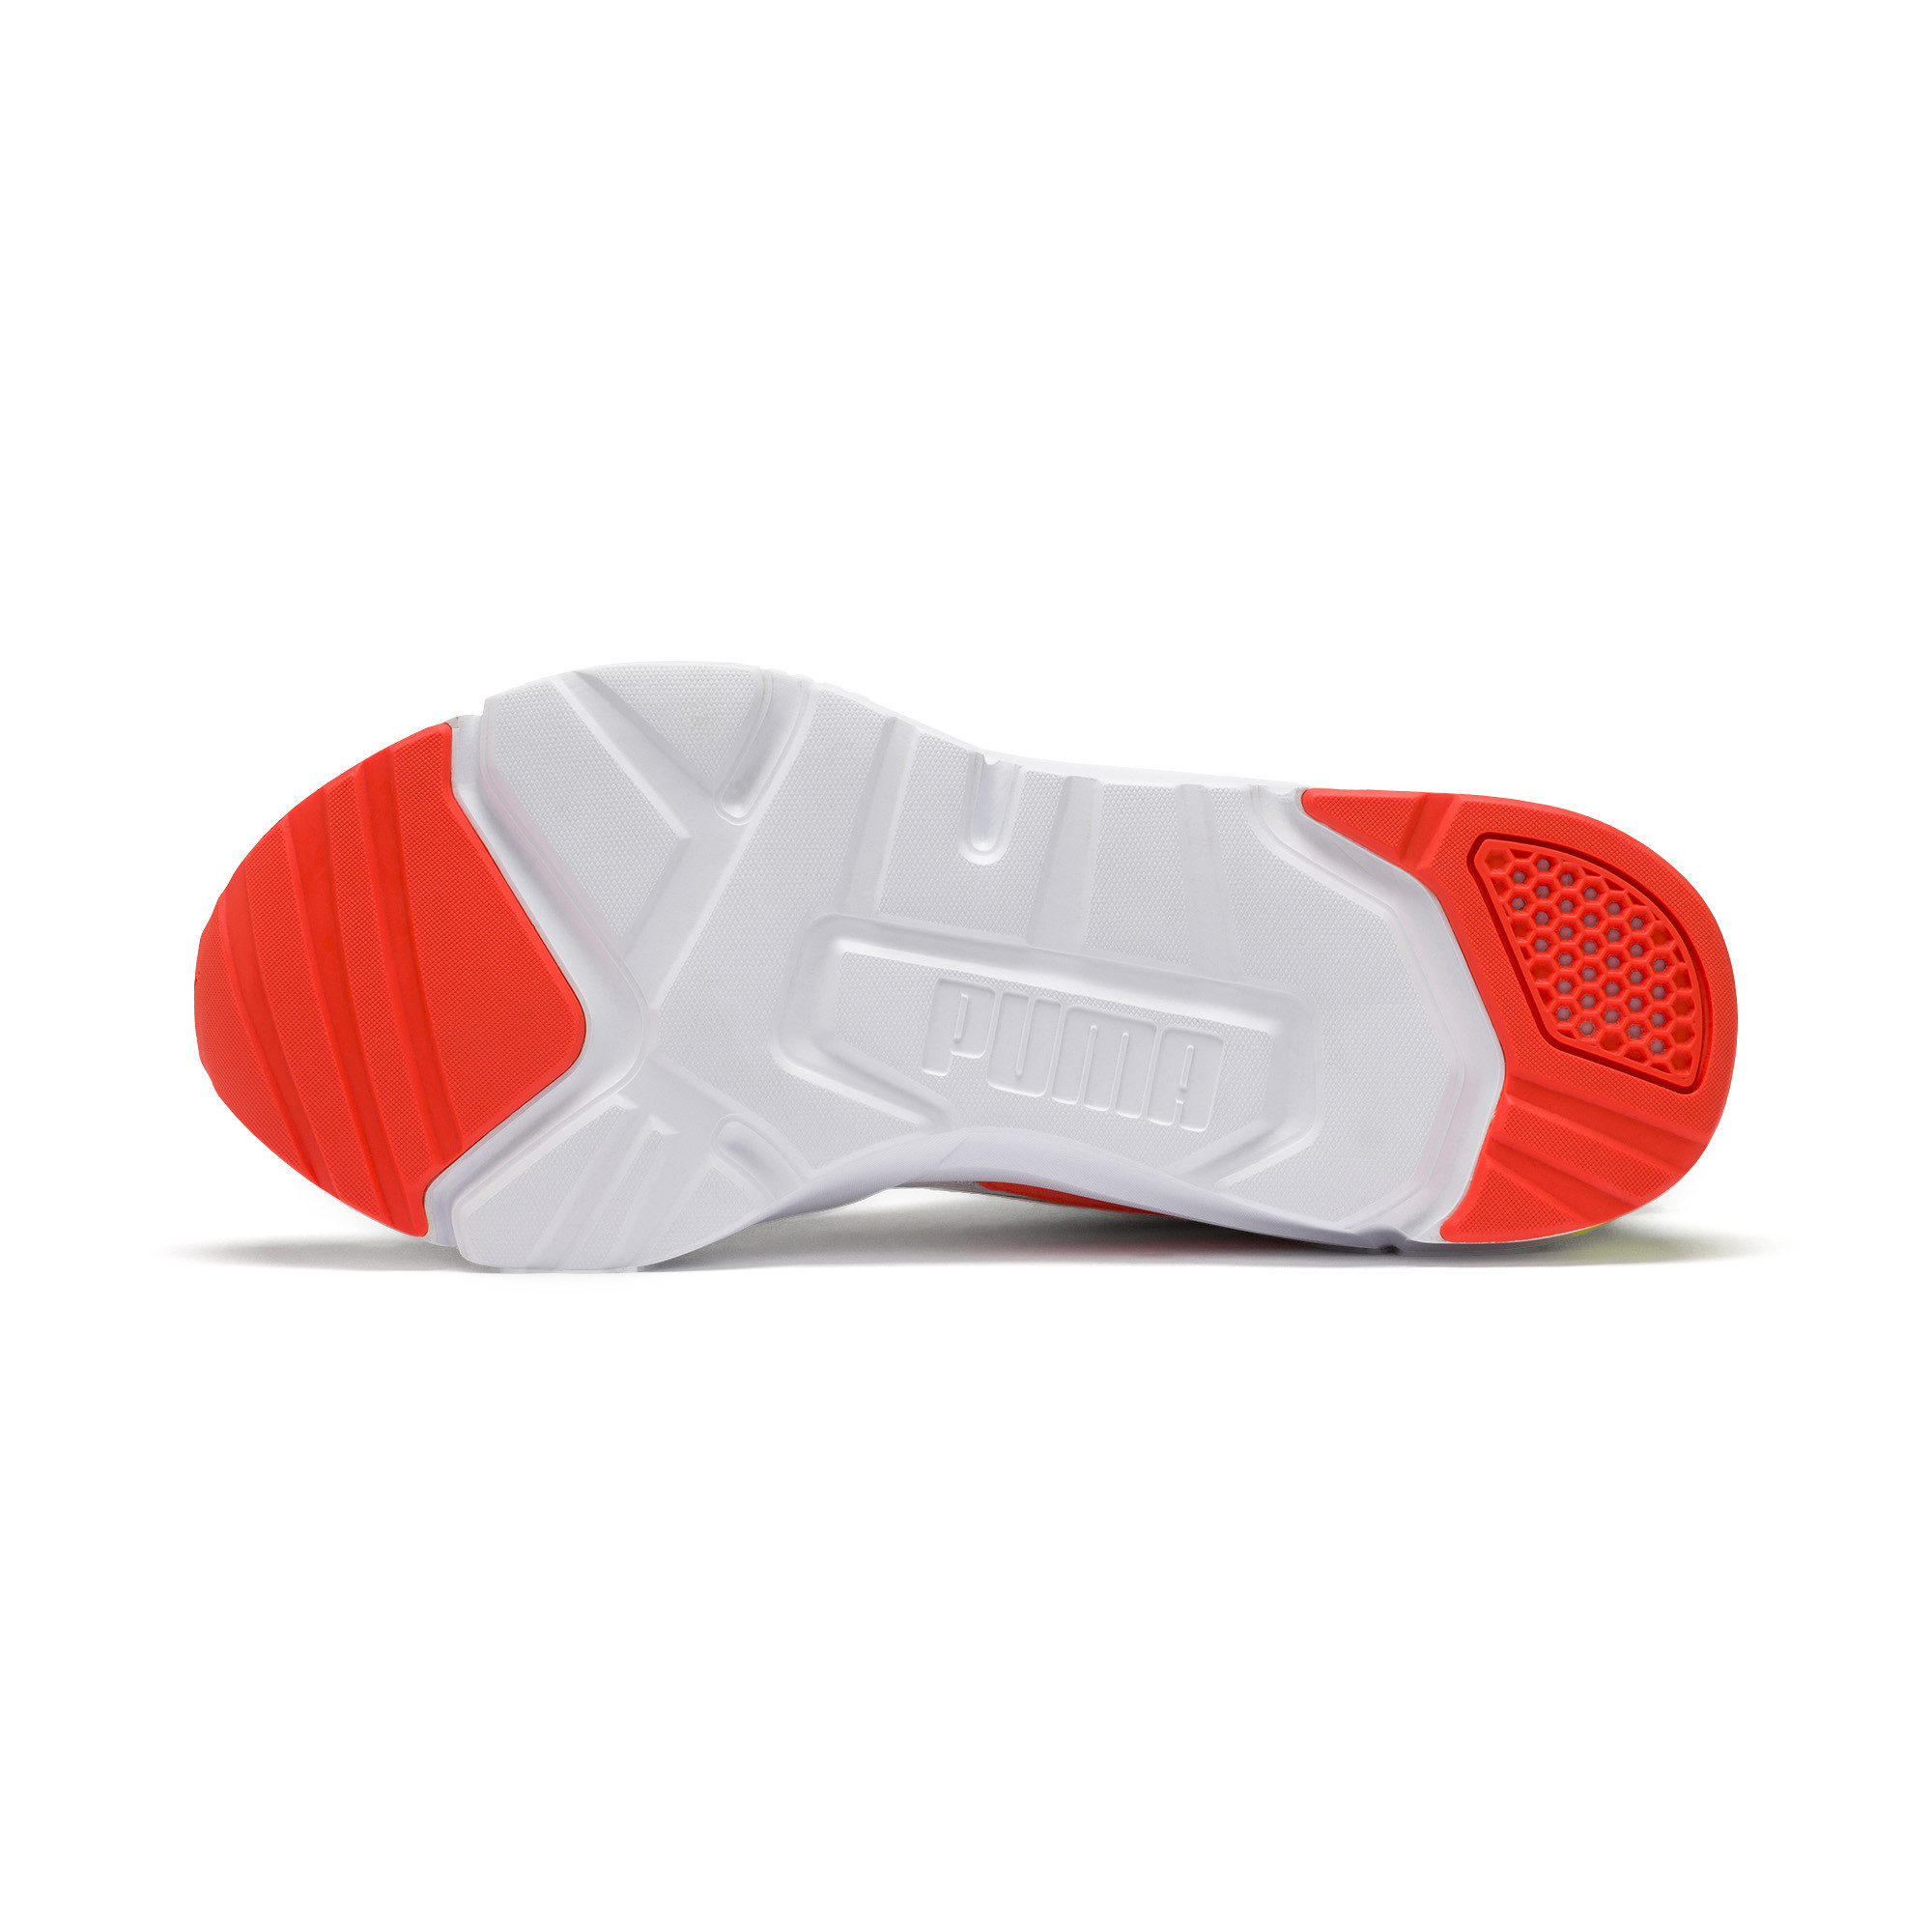 PUMA-Men-039-s-CELL-Phase-Training-Shoes thumbnail 6